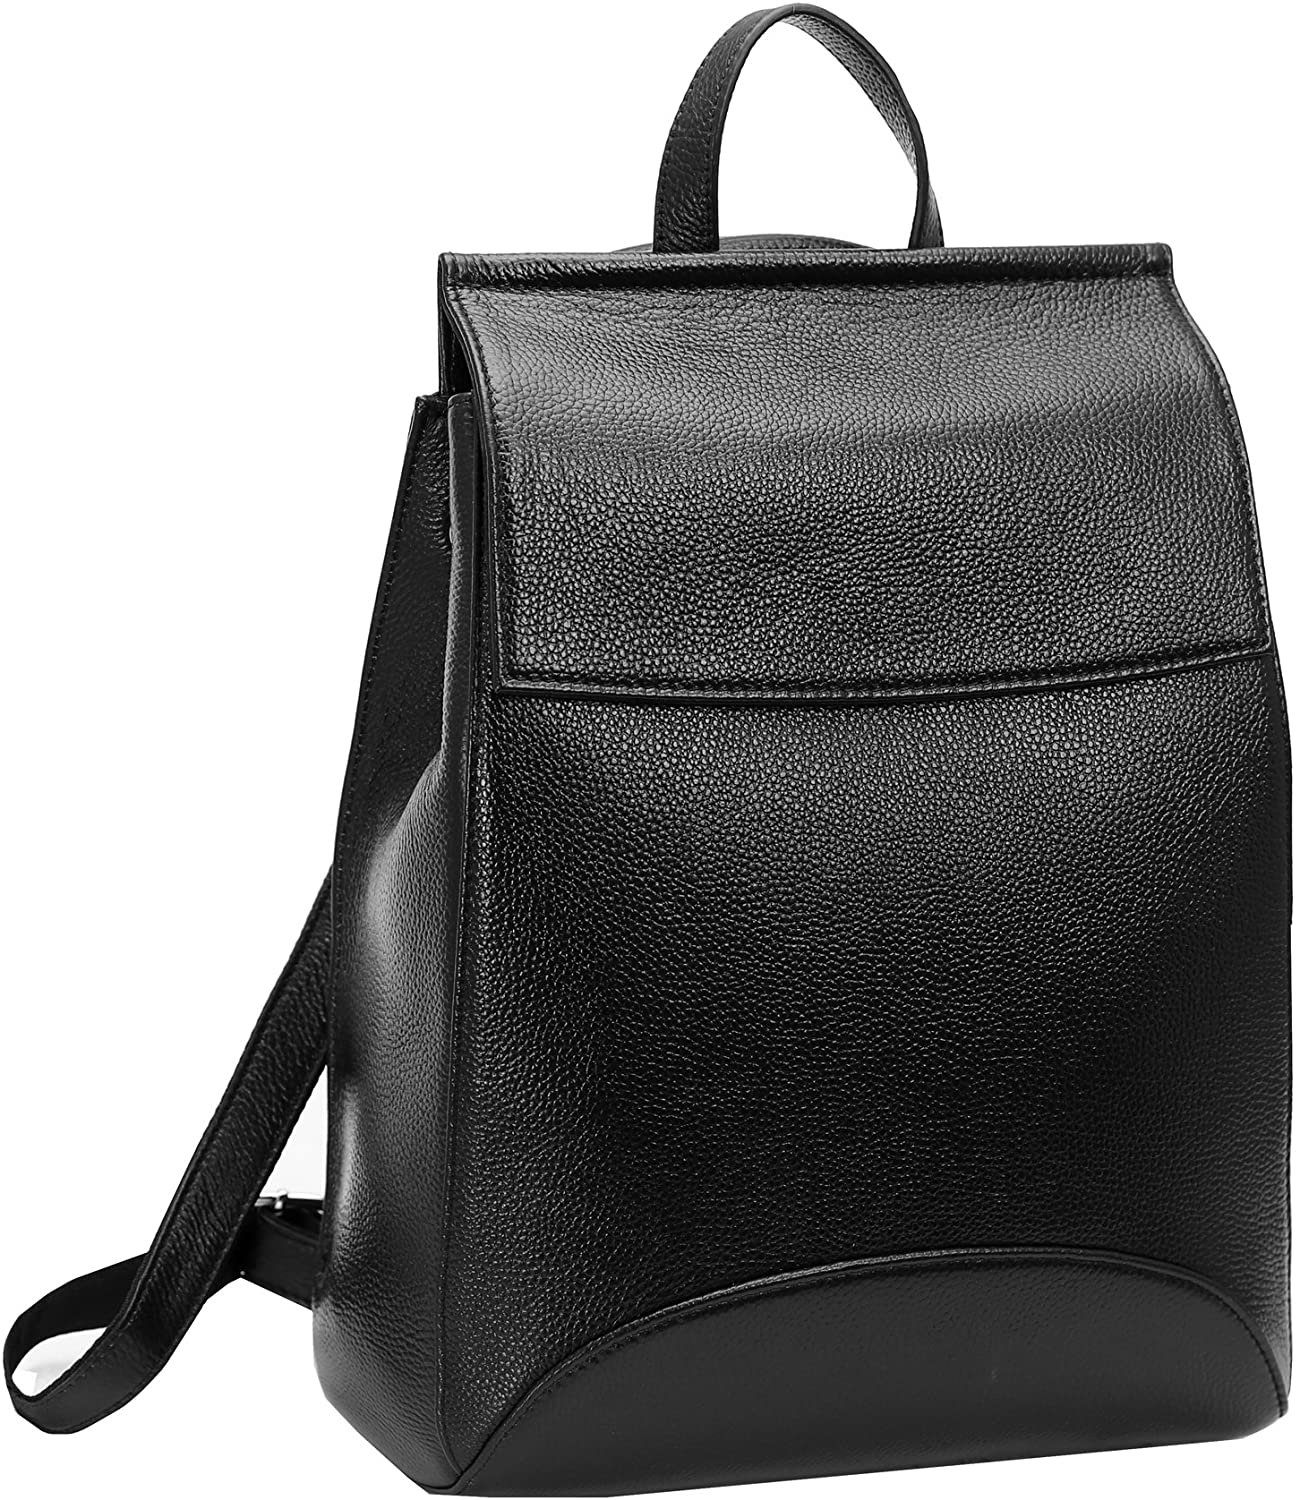 Heshe Womens Leather Backpack Casual Style Flap Backpacks Daypack for Ladies Black-R